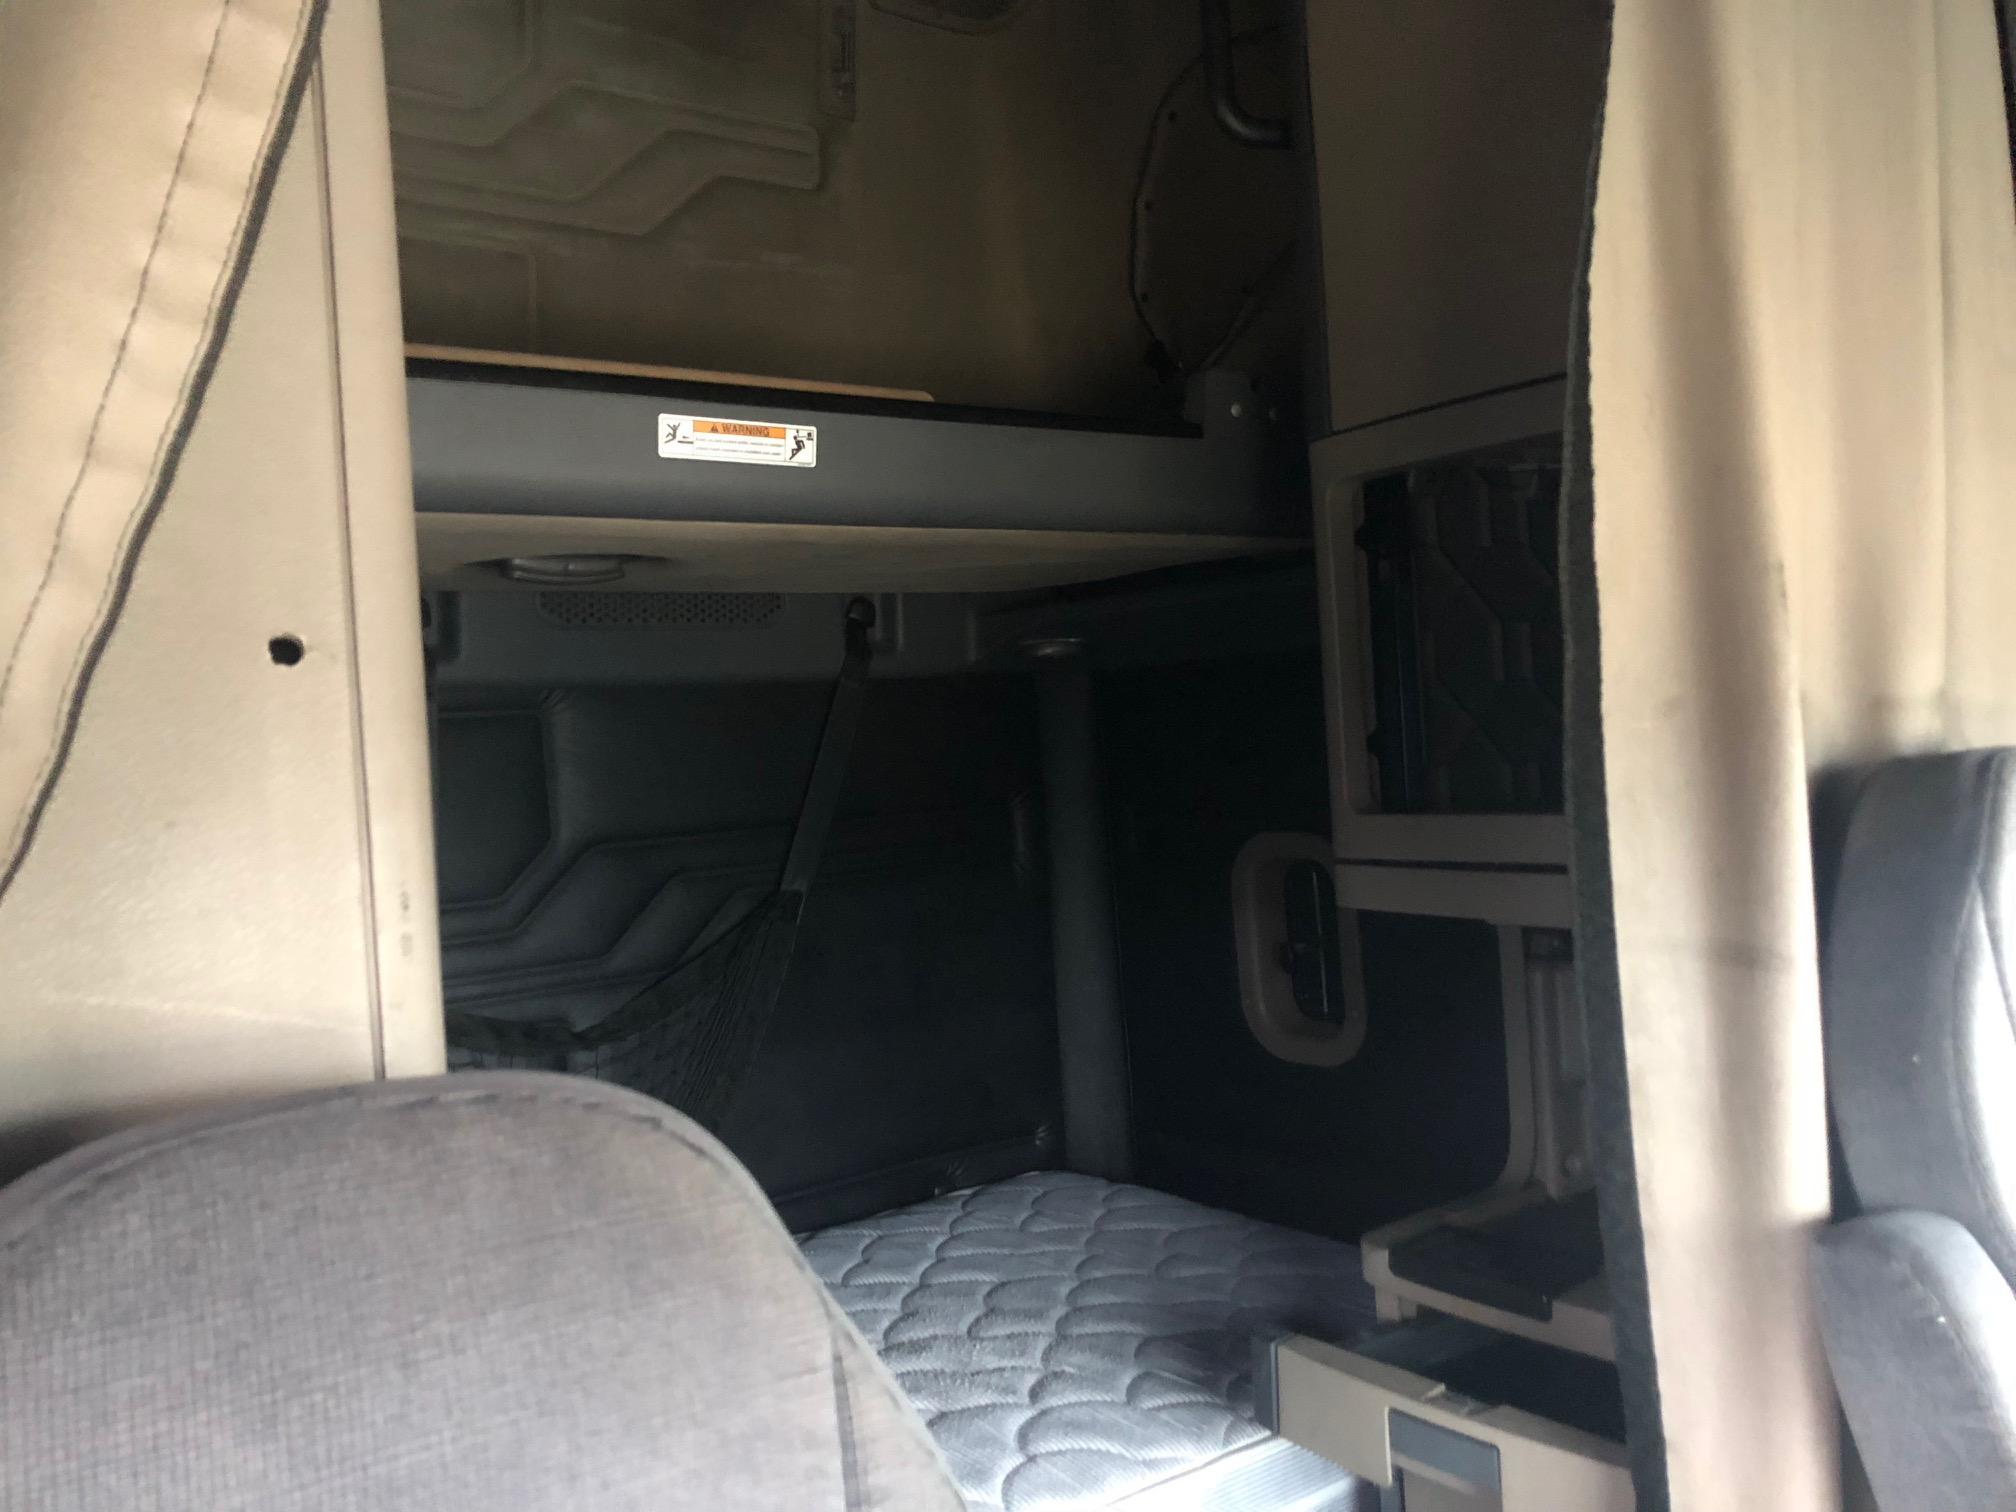 Used 2012 Freightliner Cascadia for sale-59234813